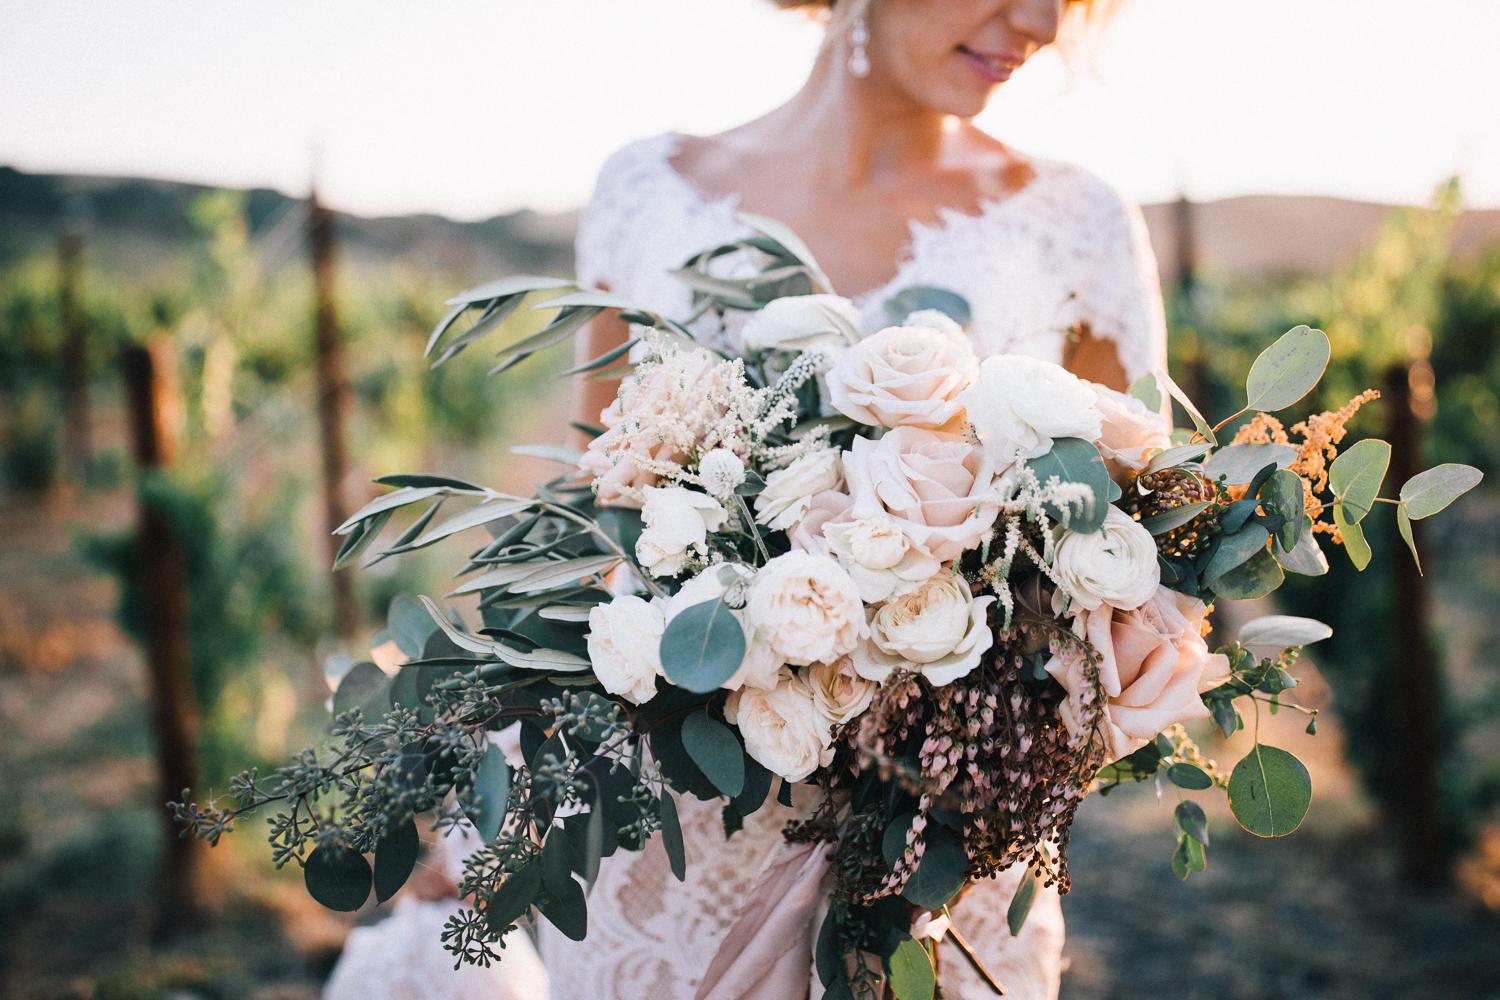 2018_08_ 112018.08.11 Cline Vinyard Wedding Blog Photos Edited For Web 0058.jpg